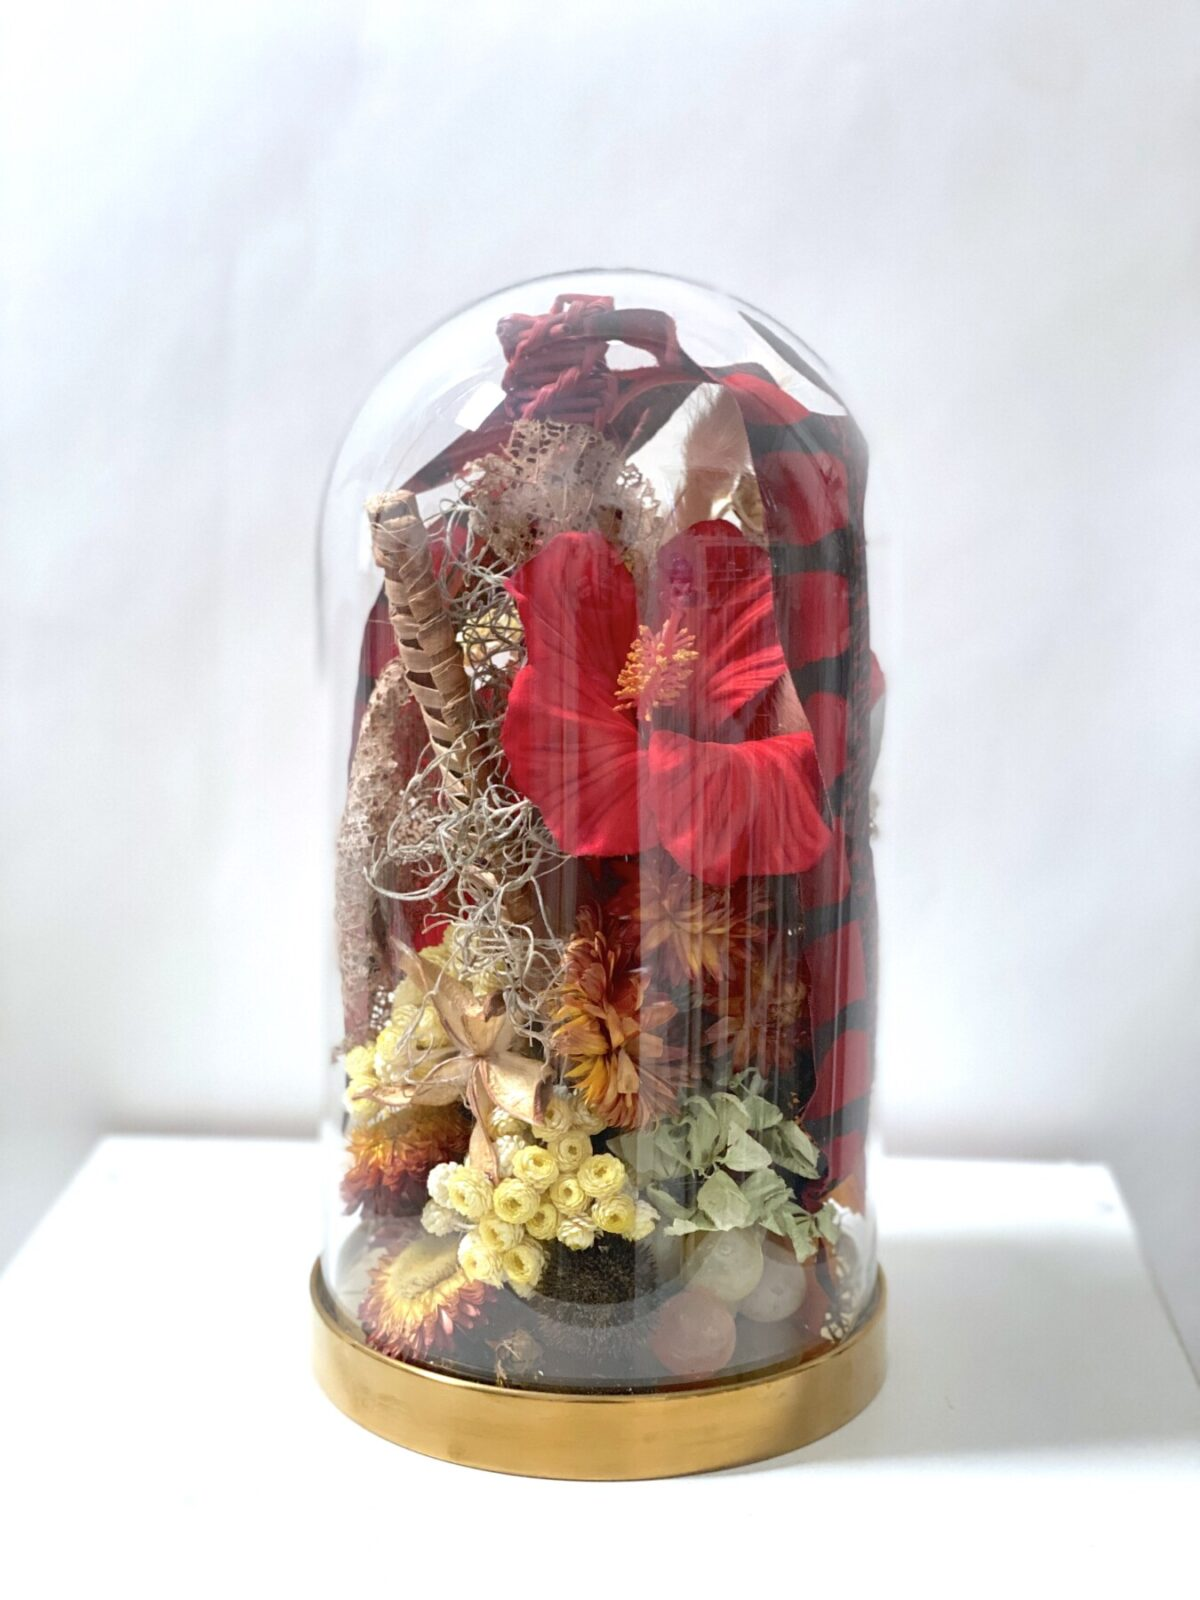 Everlasting Dried Flowers: Determination | Order Online Flower Delivery Melbourne, Thrive Flowers